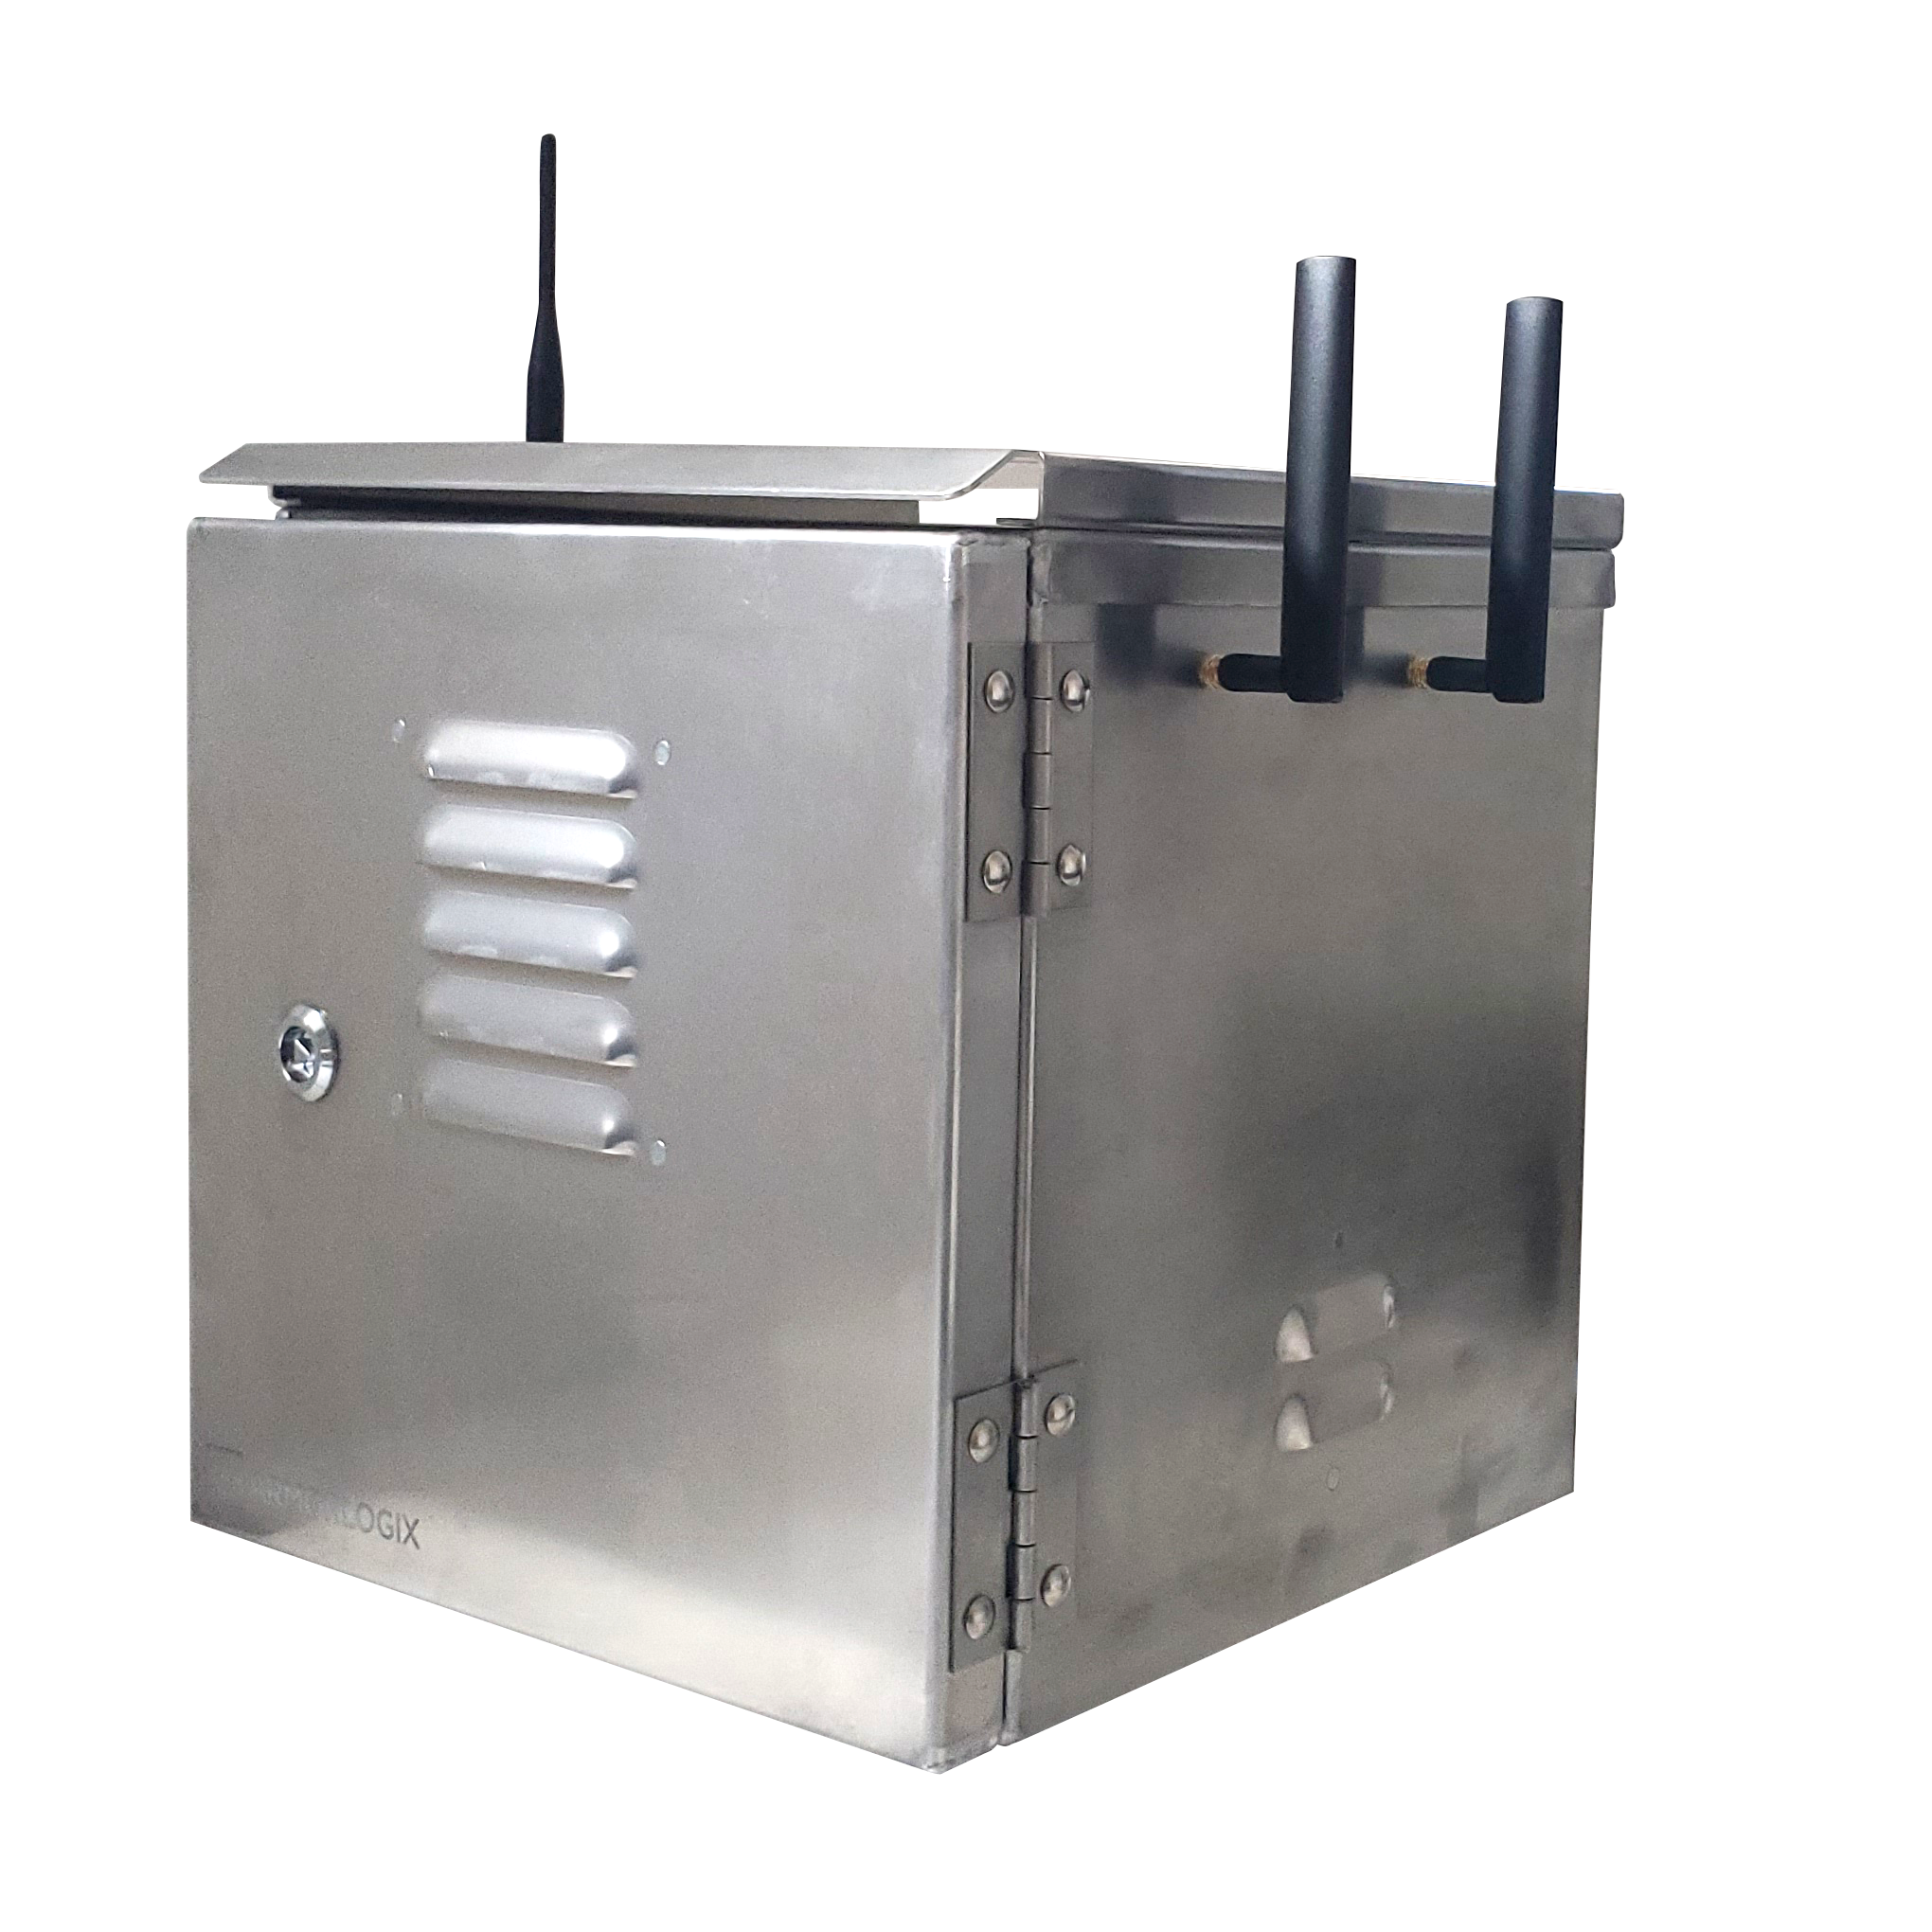 Weatherproof enclosure with 4G and GPS connectivity - 90°